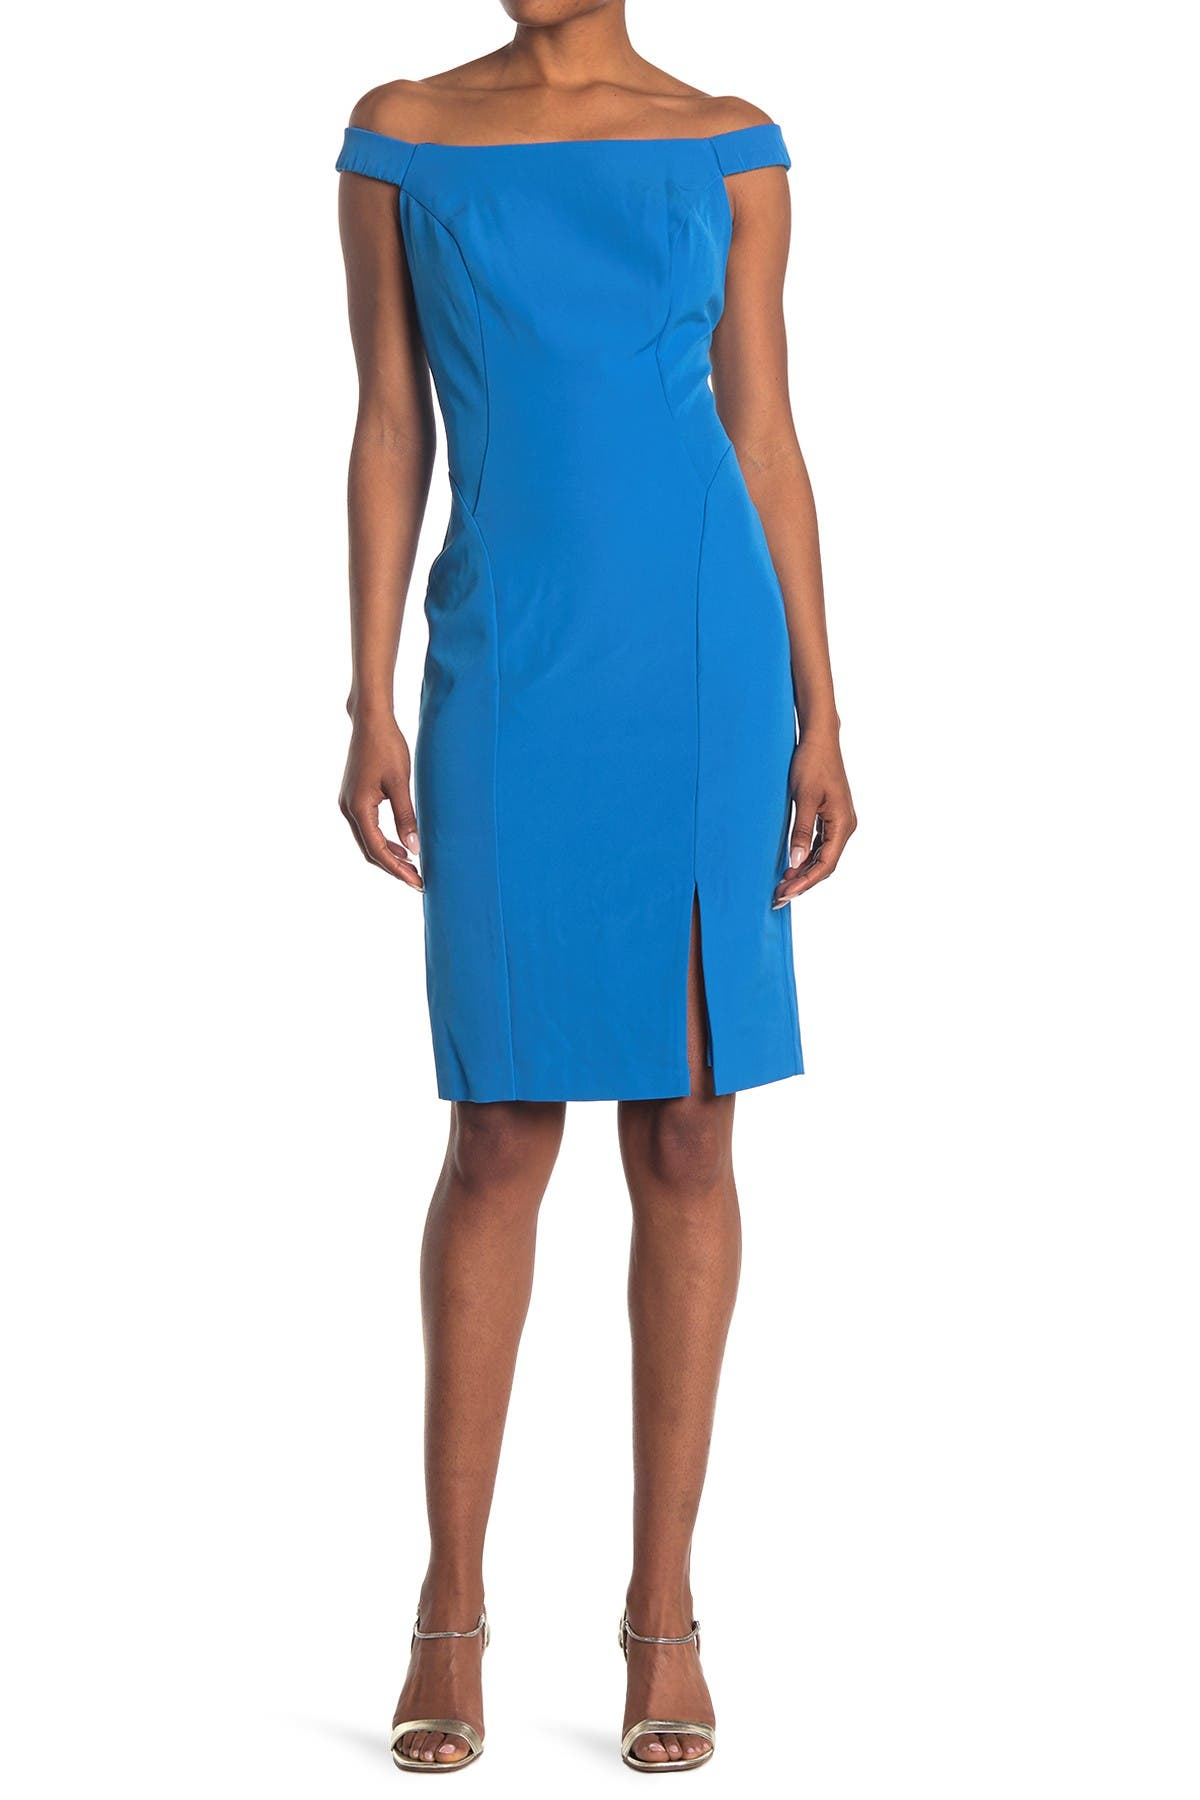 Image of Marina Off-The-Shoulder Bodycon With Side Slit